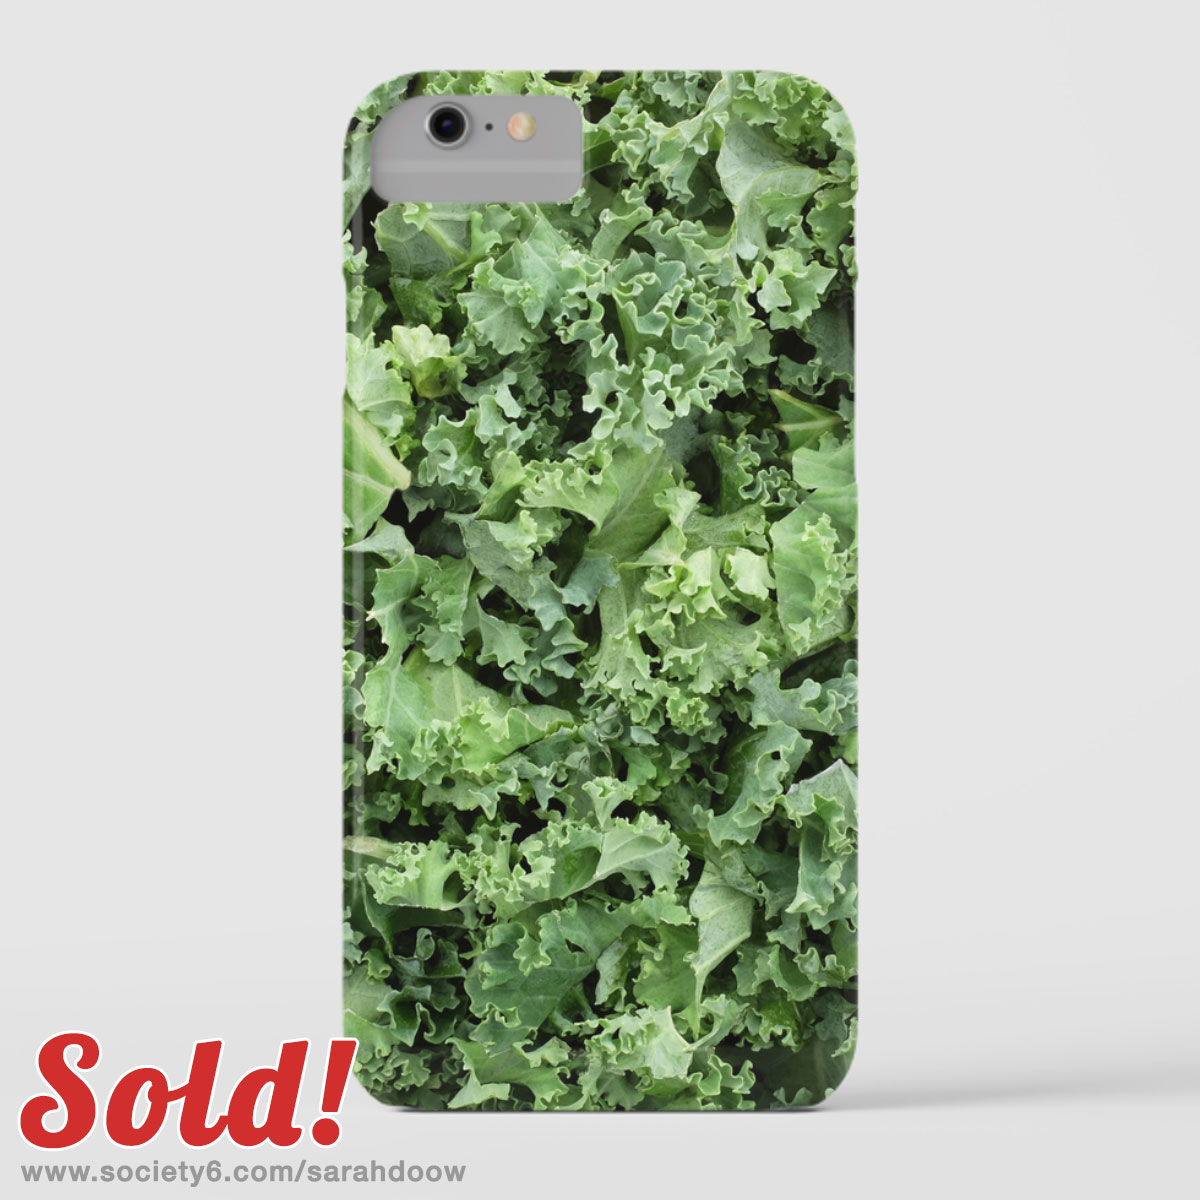 Shredded kale iPhone 8 case